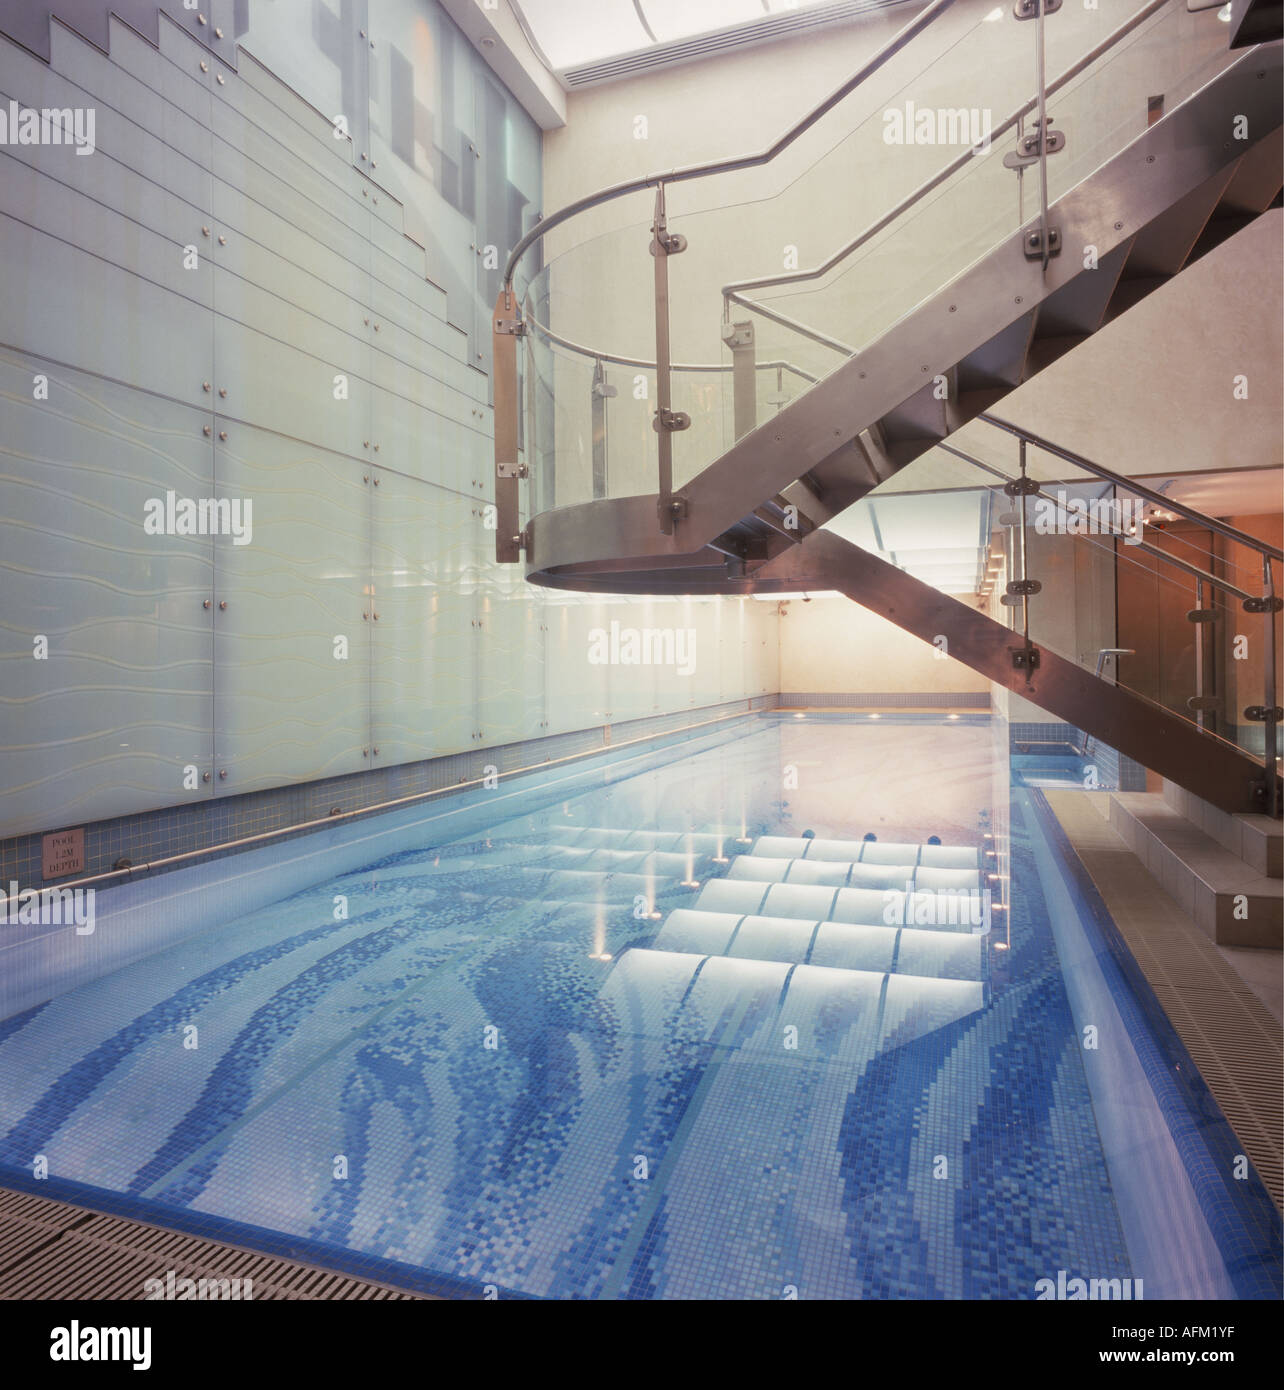 glass and steel cantilevered staircase in modern hotel indoor swimming pool